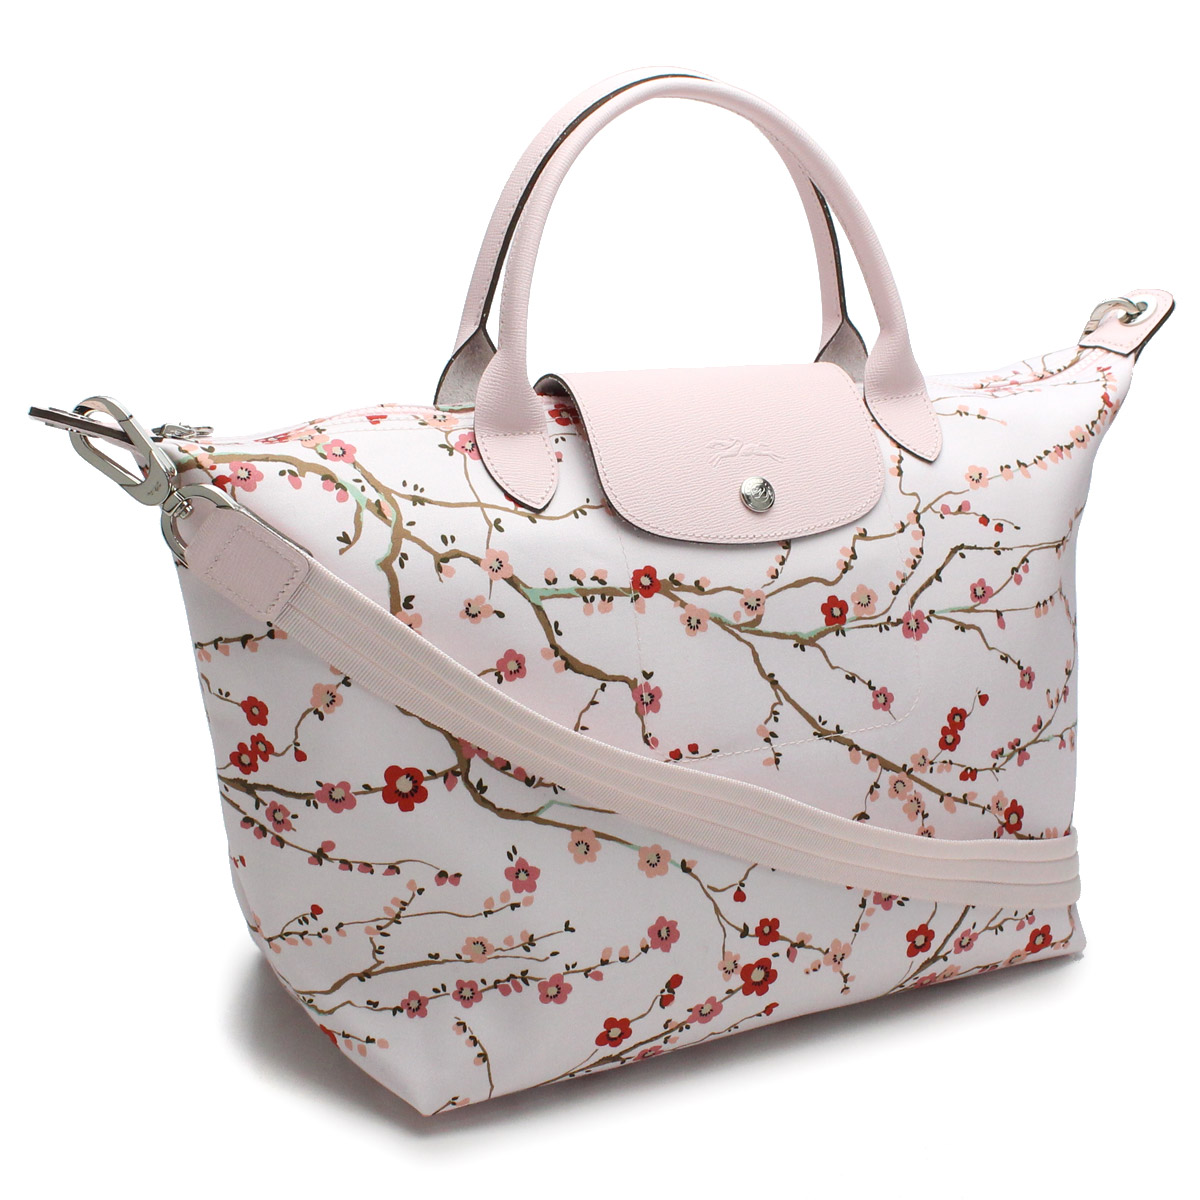 250c40df9 Bighit The total brand wholesale: Longchamp (LONGCHAMP) LE PLIAGE NEO  ファンテジーサクラ 2WAY tote bag 1515 634 A26 pink system, multicolored | Rakuten ...